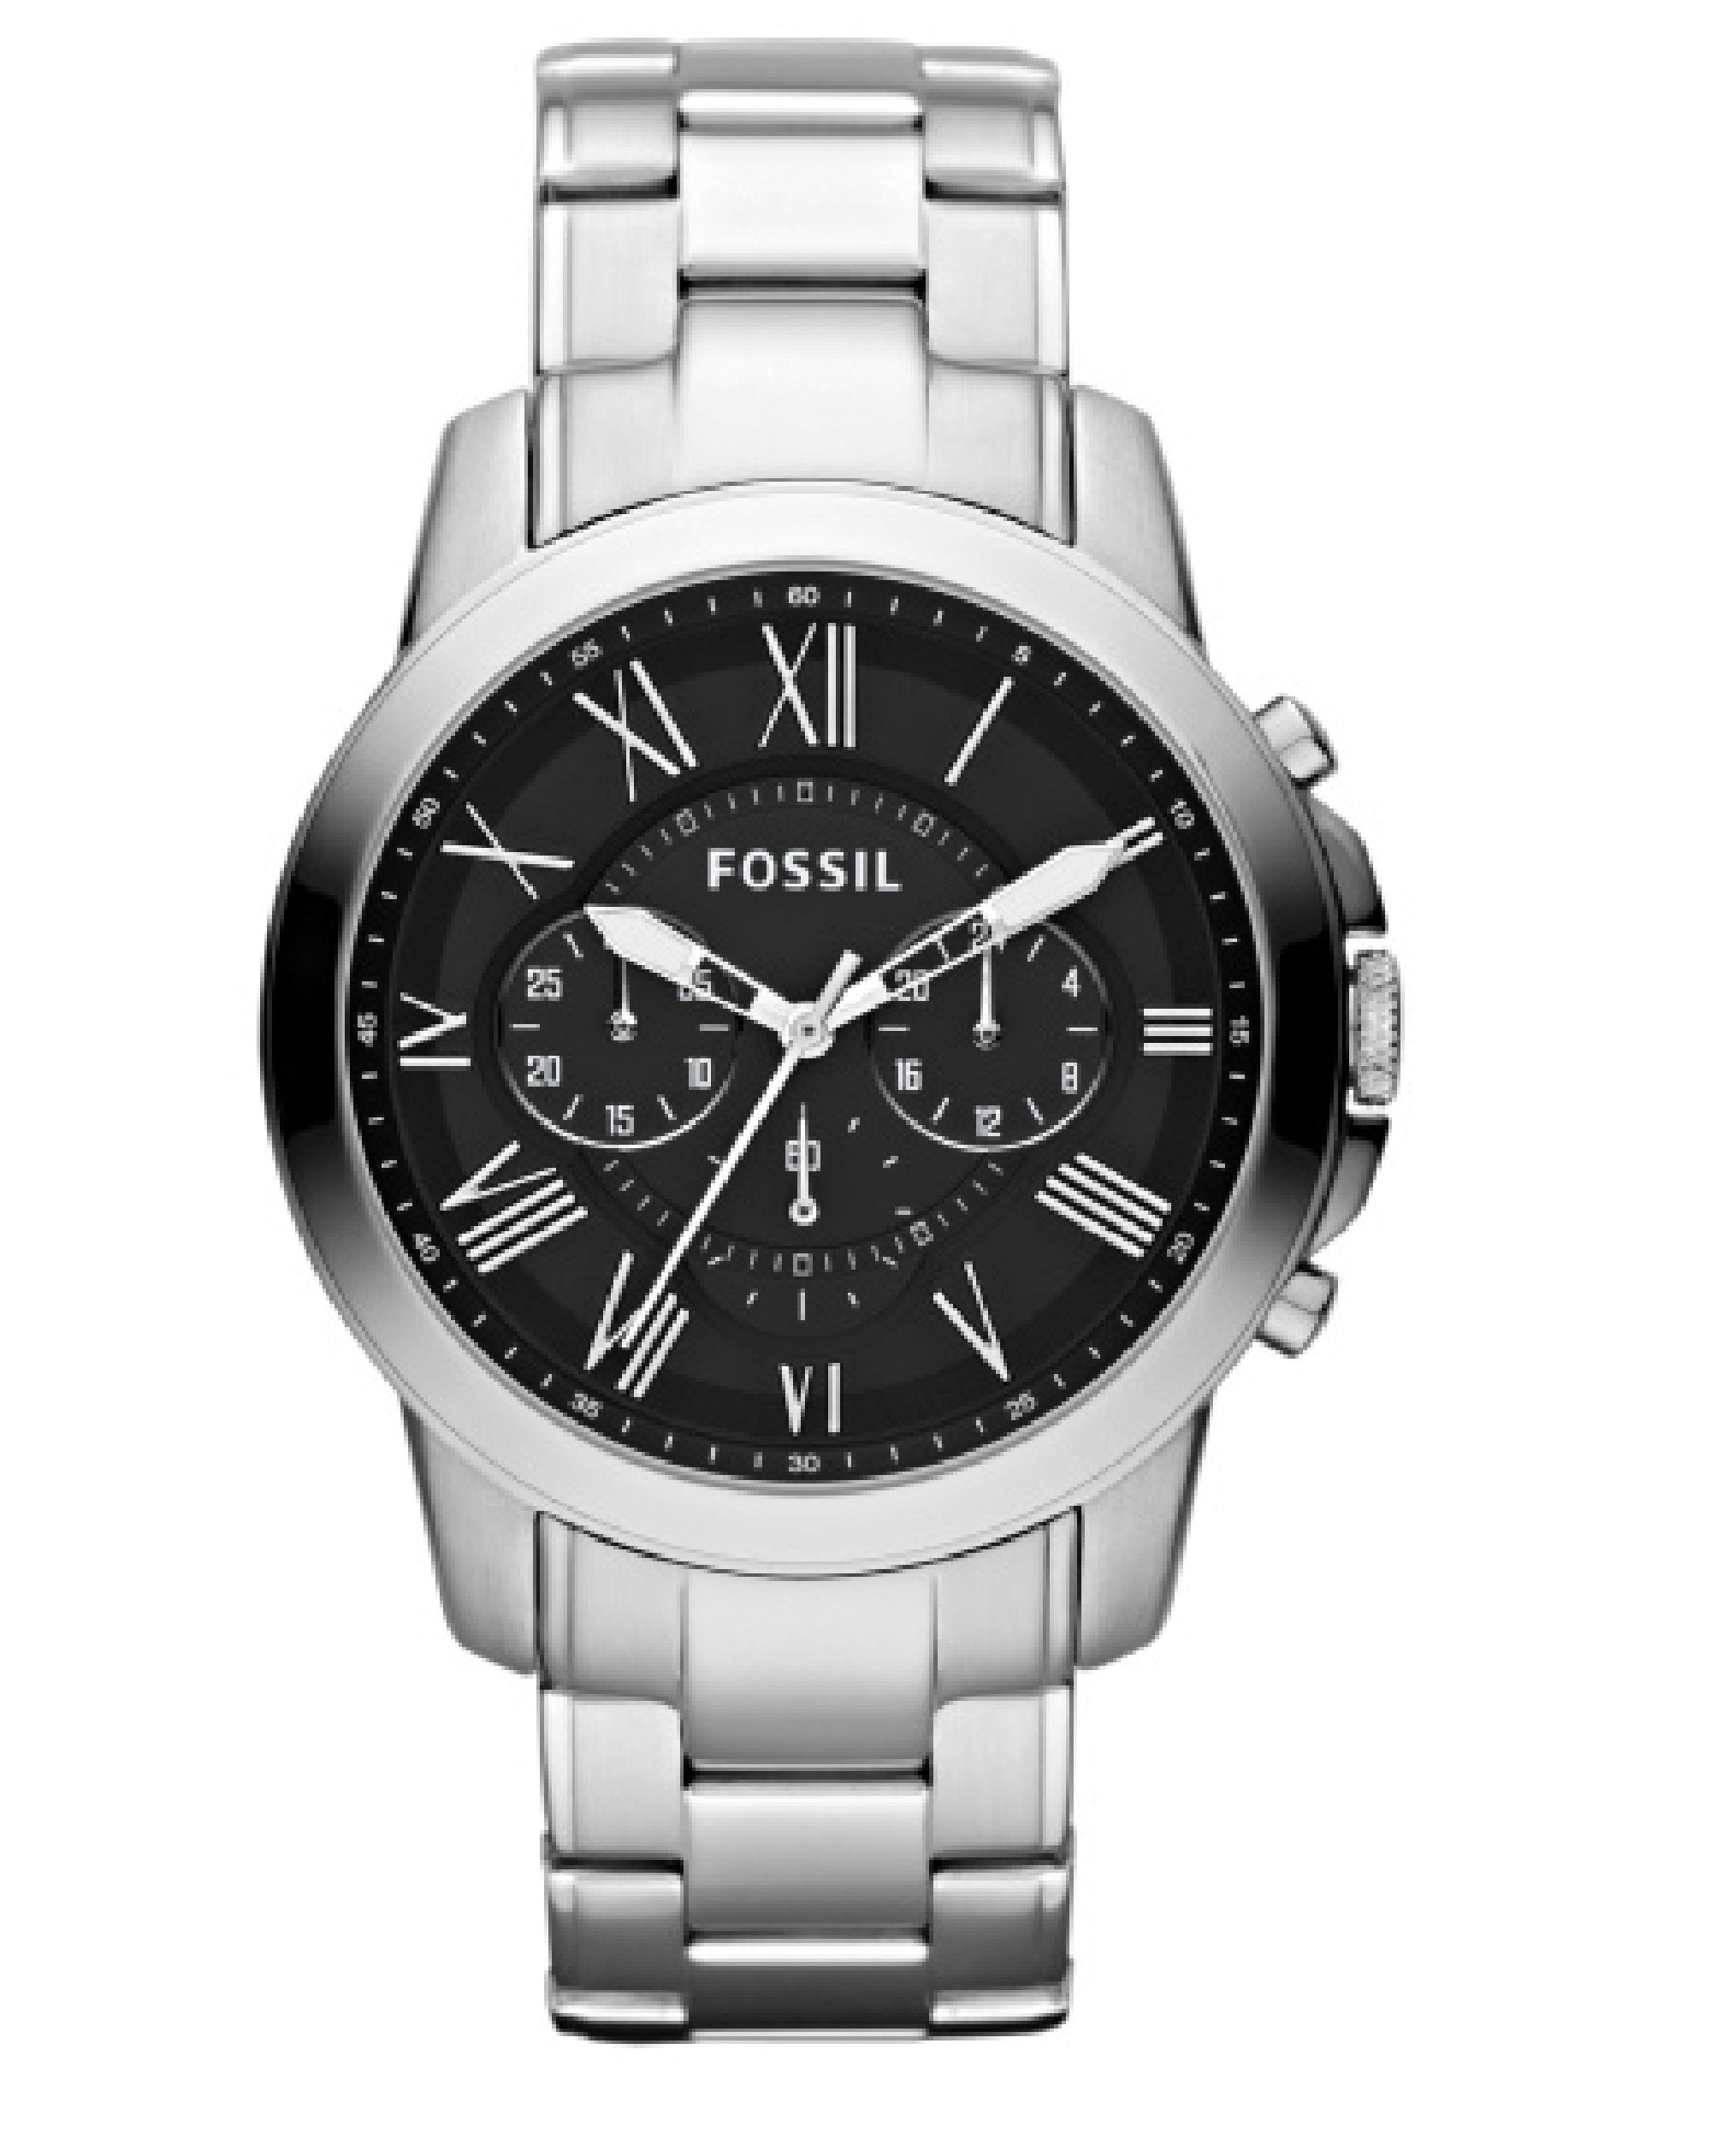 GRANT CRONOGRAPH | FS4736IE | FOSSIL OFFICIAL